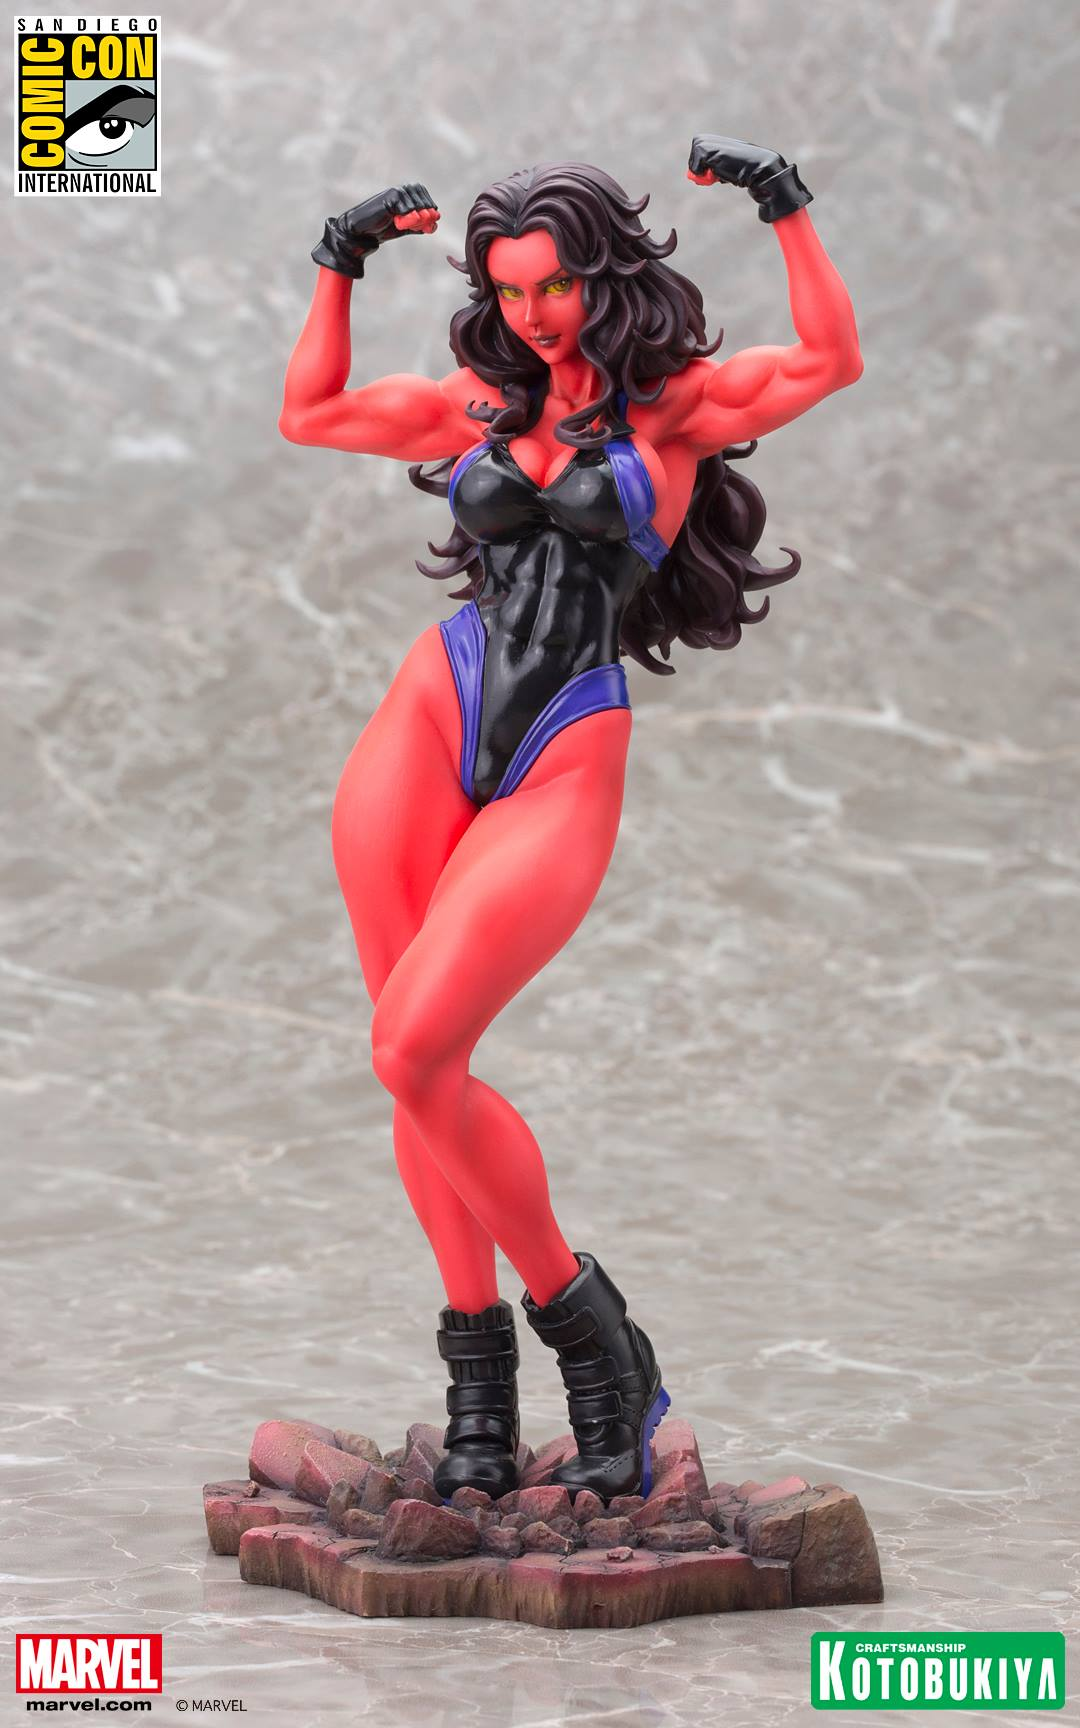 red-she-hulk-bishoujo-statue-2015-sdcc-exclusive-marvel-kotobukiya-1